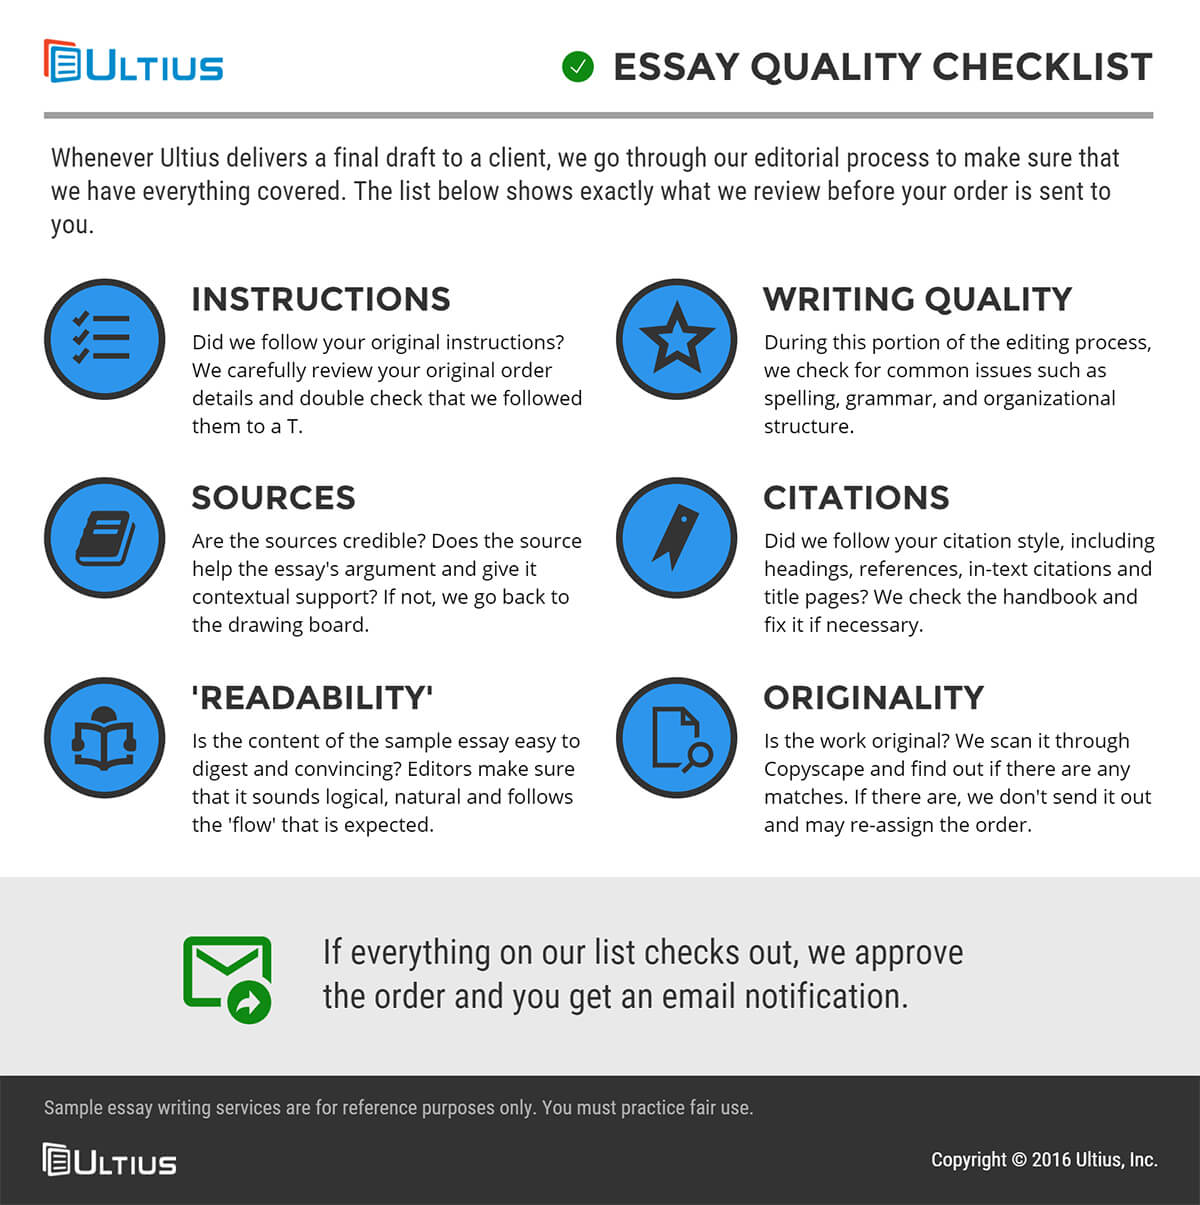 essay editing service online Quora Edit My Paper Essay Editing amp Professional Proofreading Service  Edit My Paper  Essay Editing amp Professional Proofreading Service